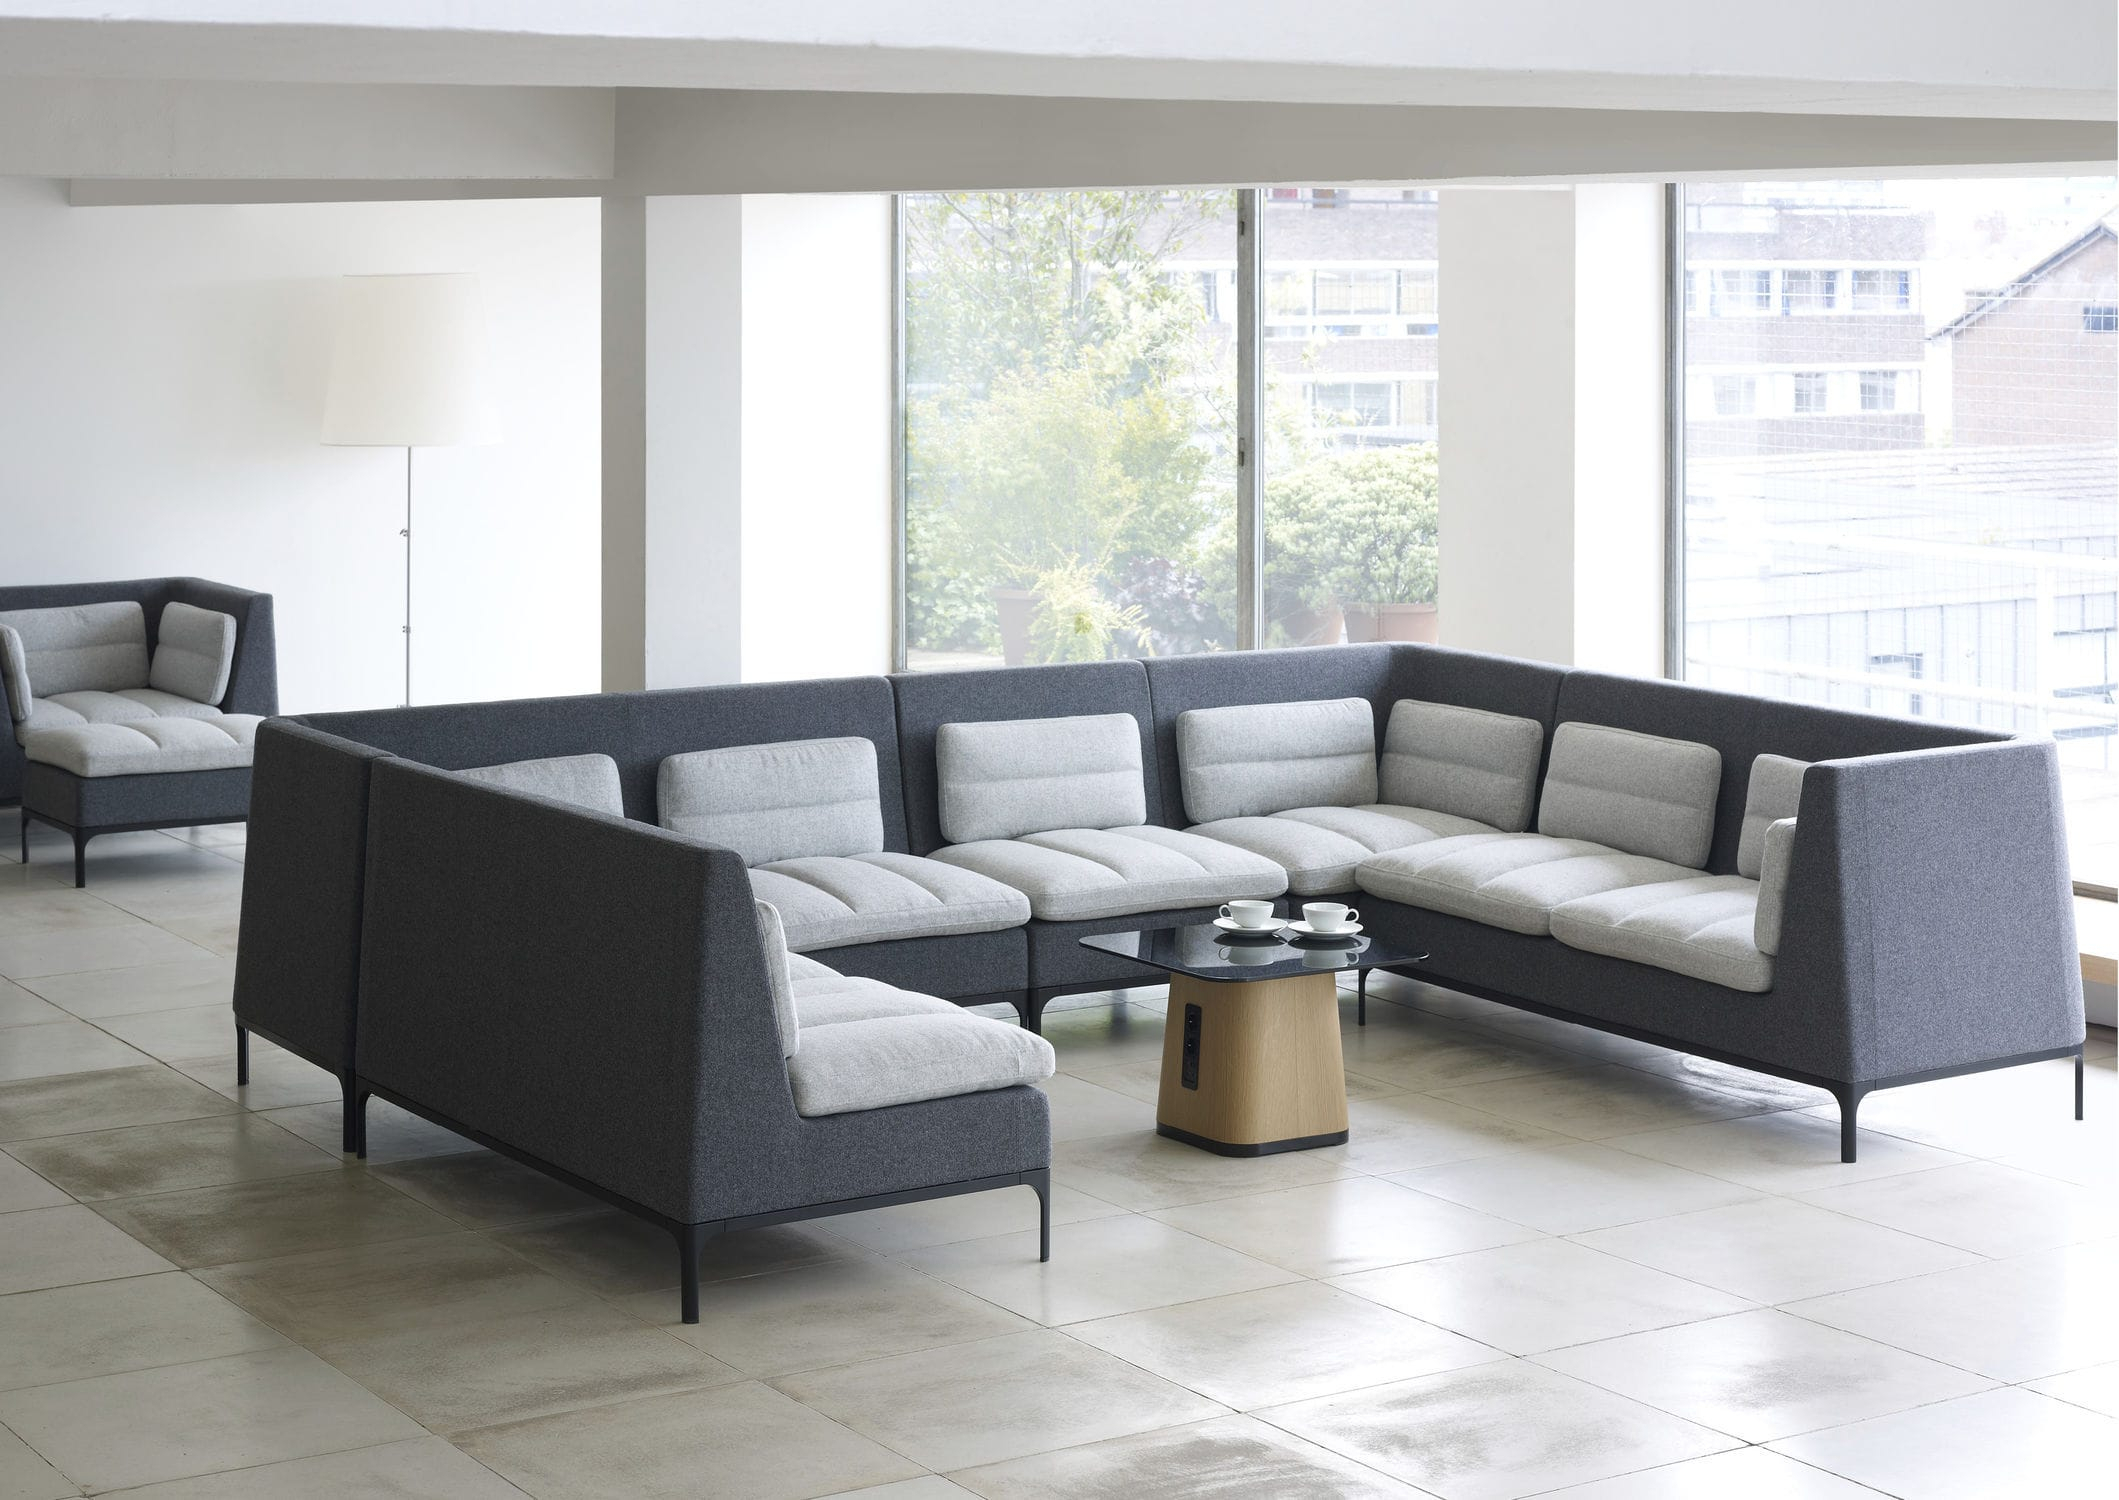 Modular Sofa / Contemporary / Aluminum / Fabric – Havenmark For Haven Sofa Chairs (Image 13 of 20)